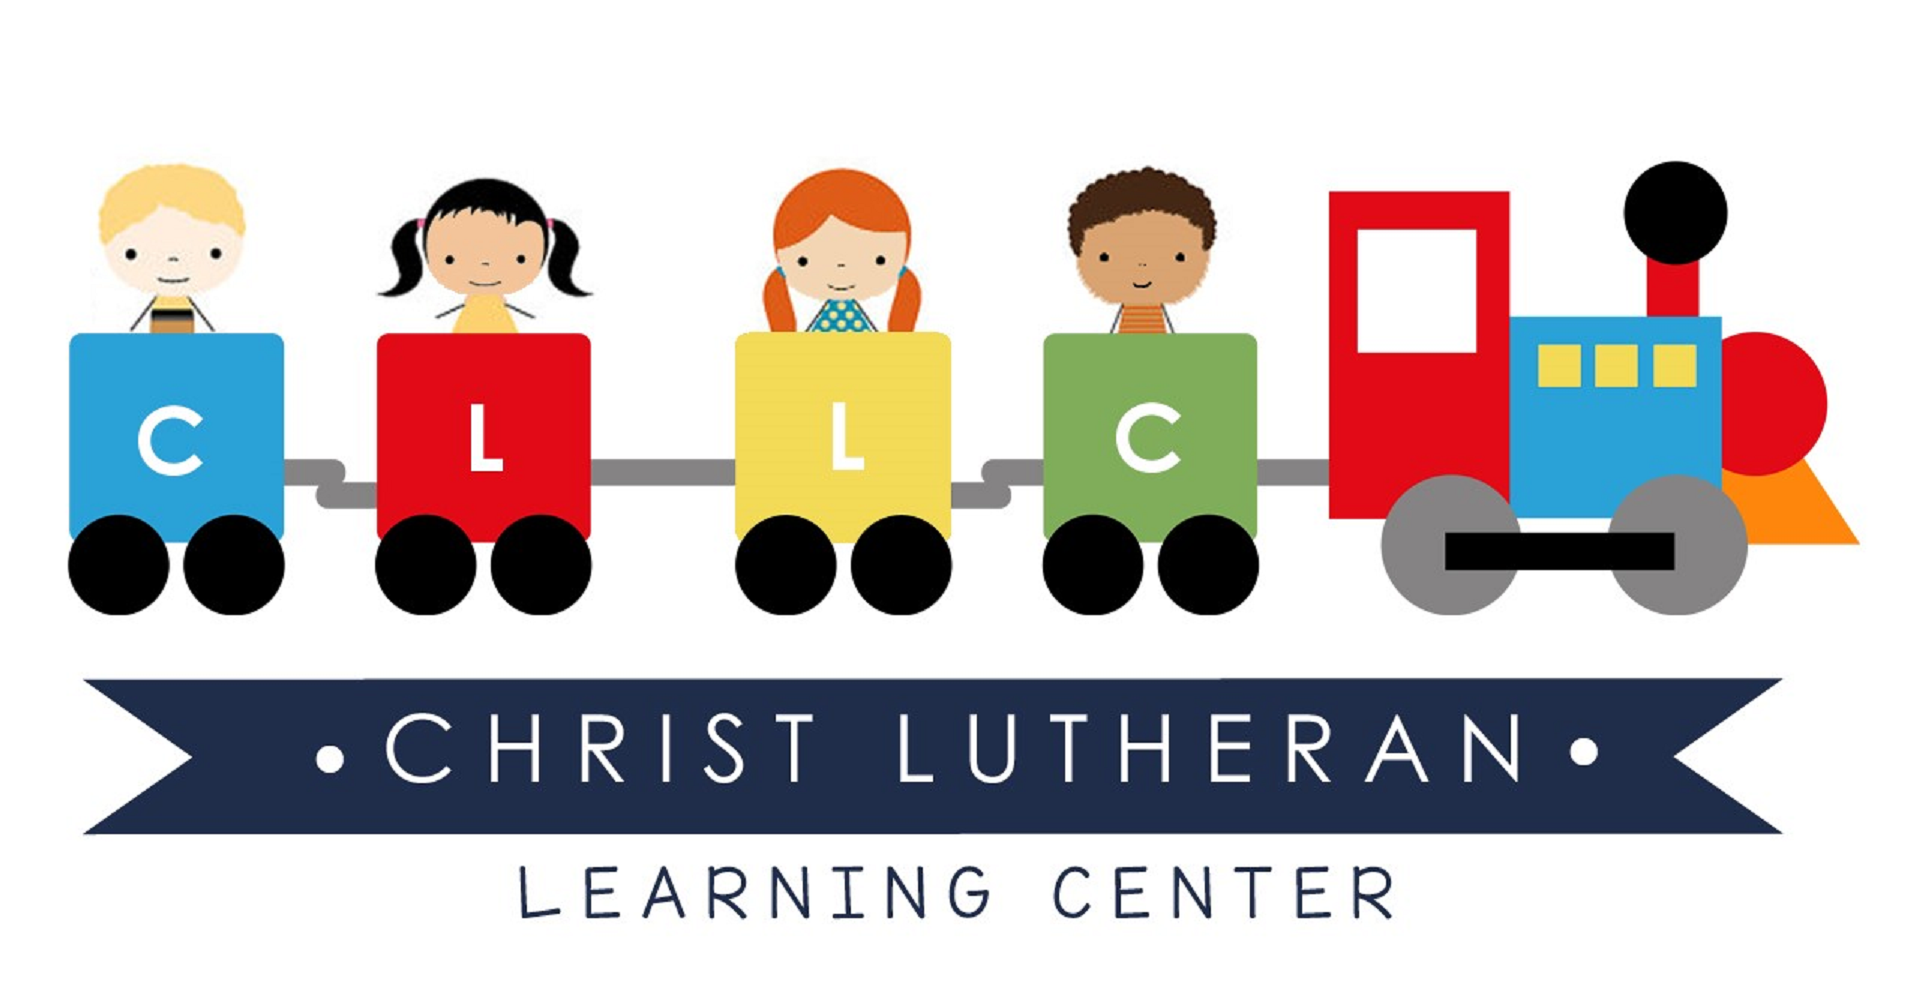 Christ Lutheran Learning Center